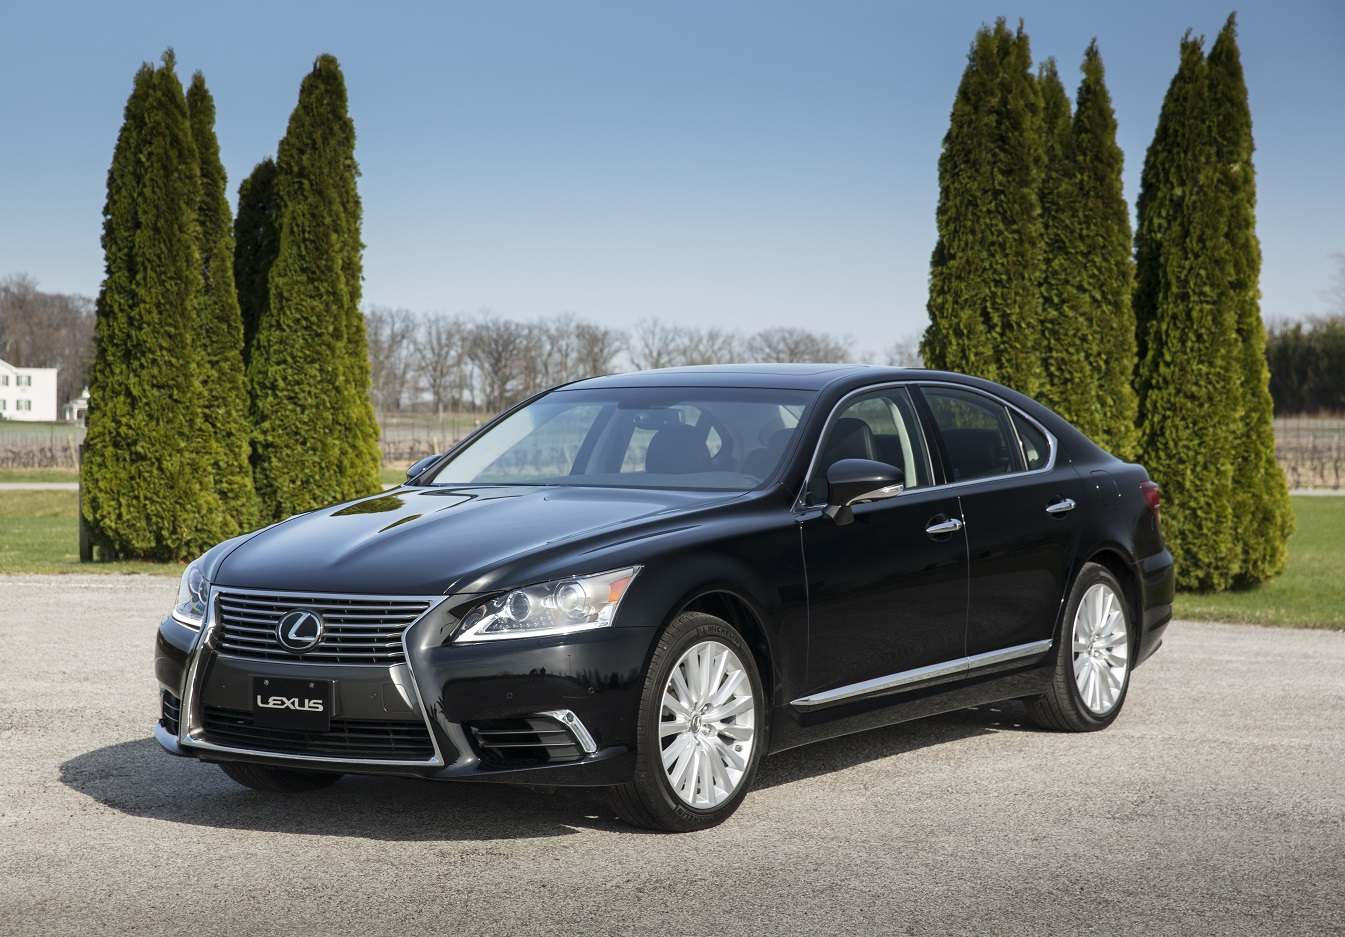 Luxury soars to new heights: The 2017 Lexus LS